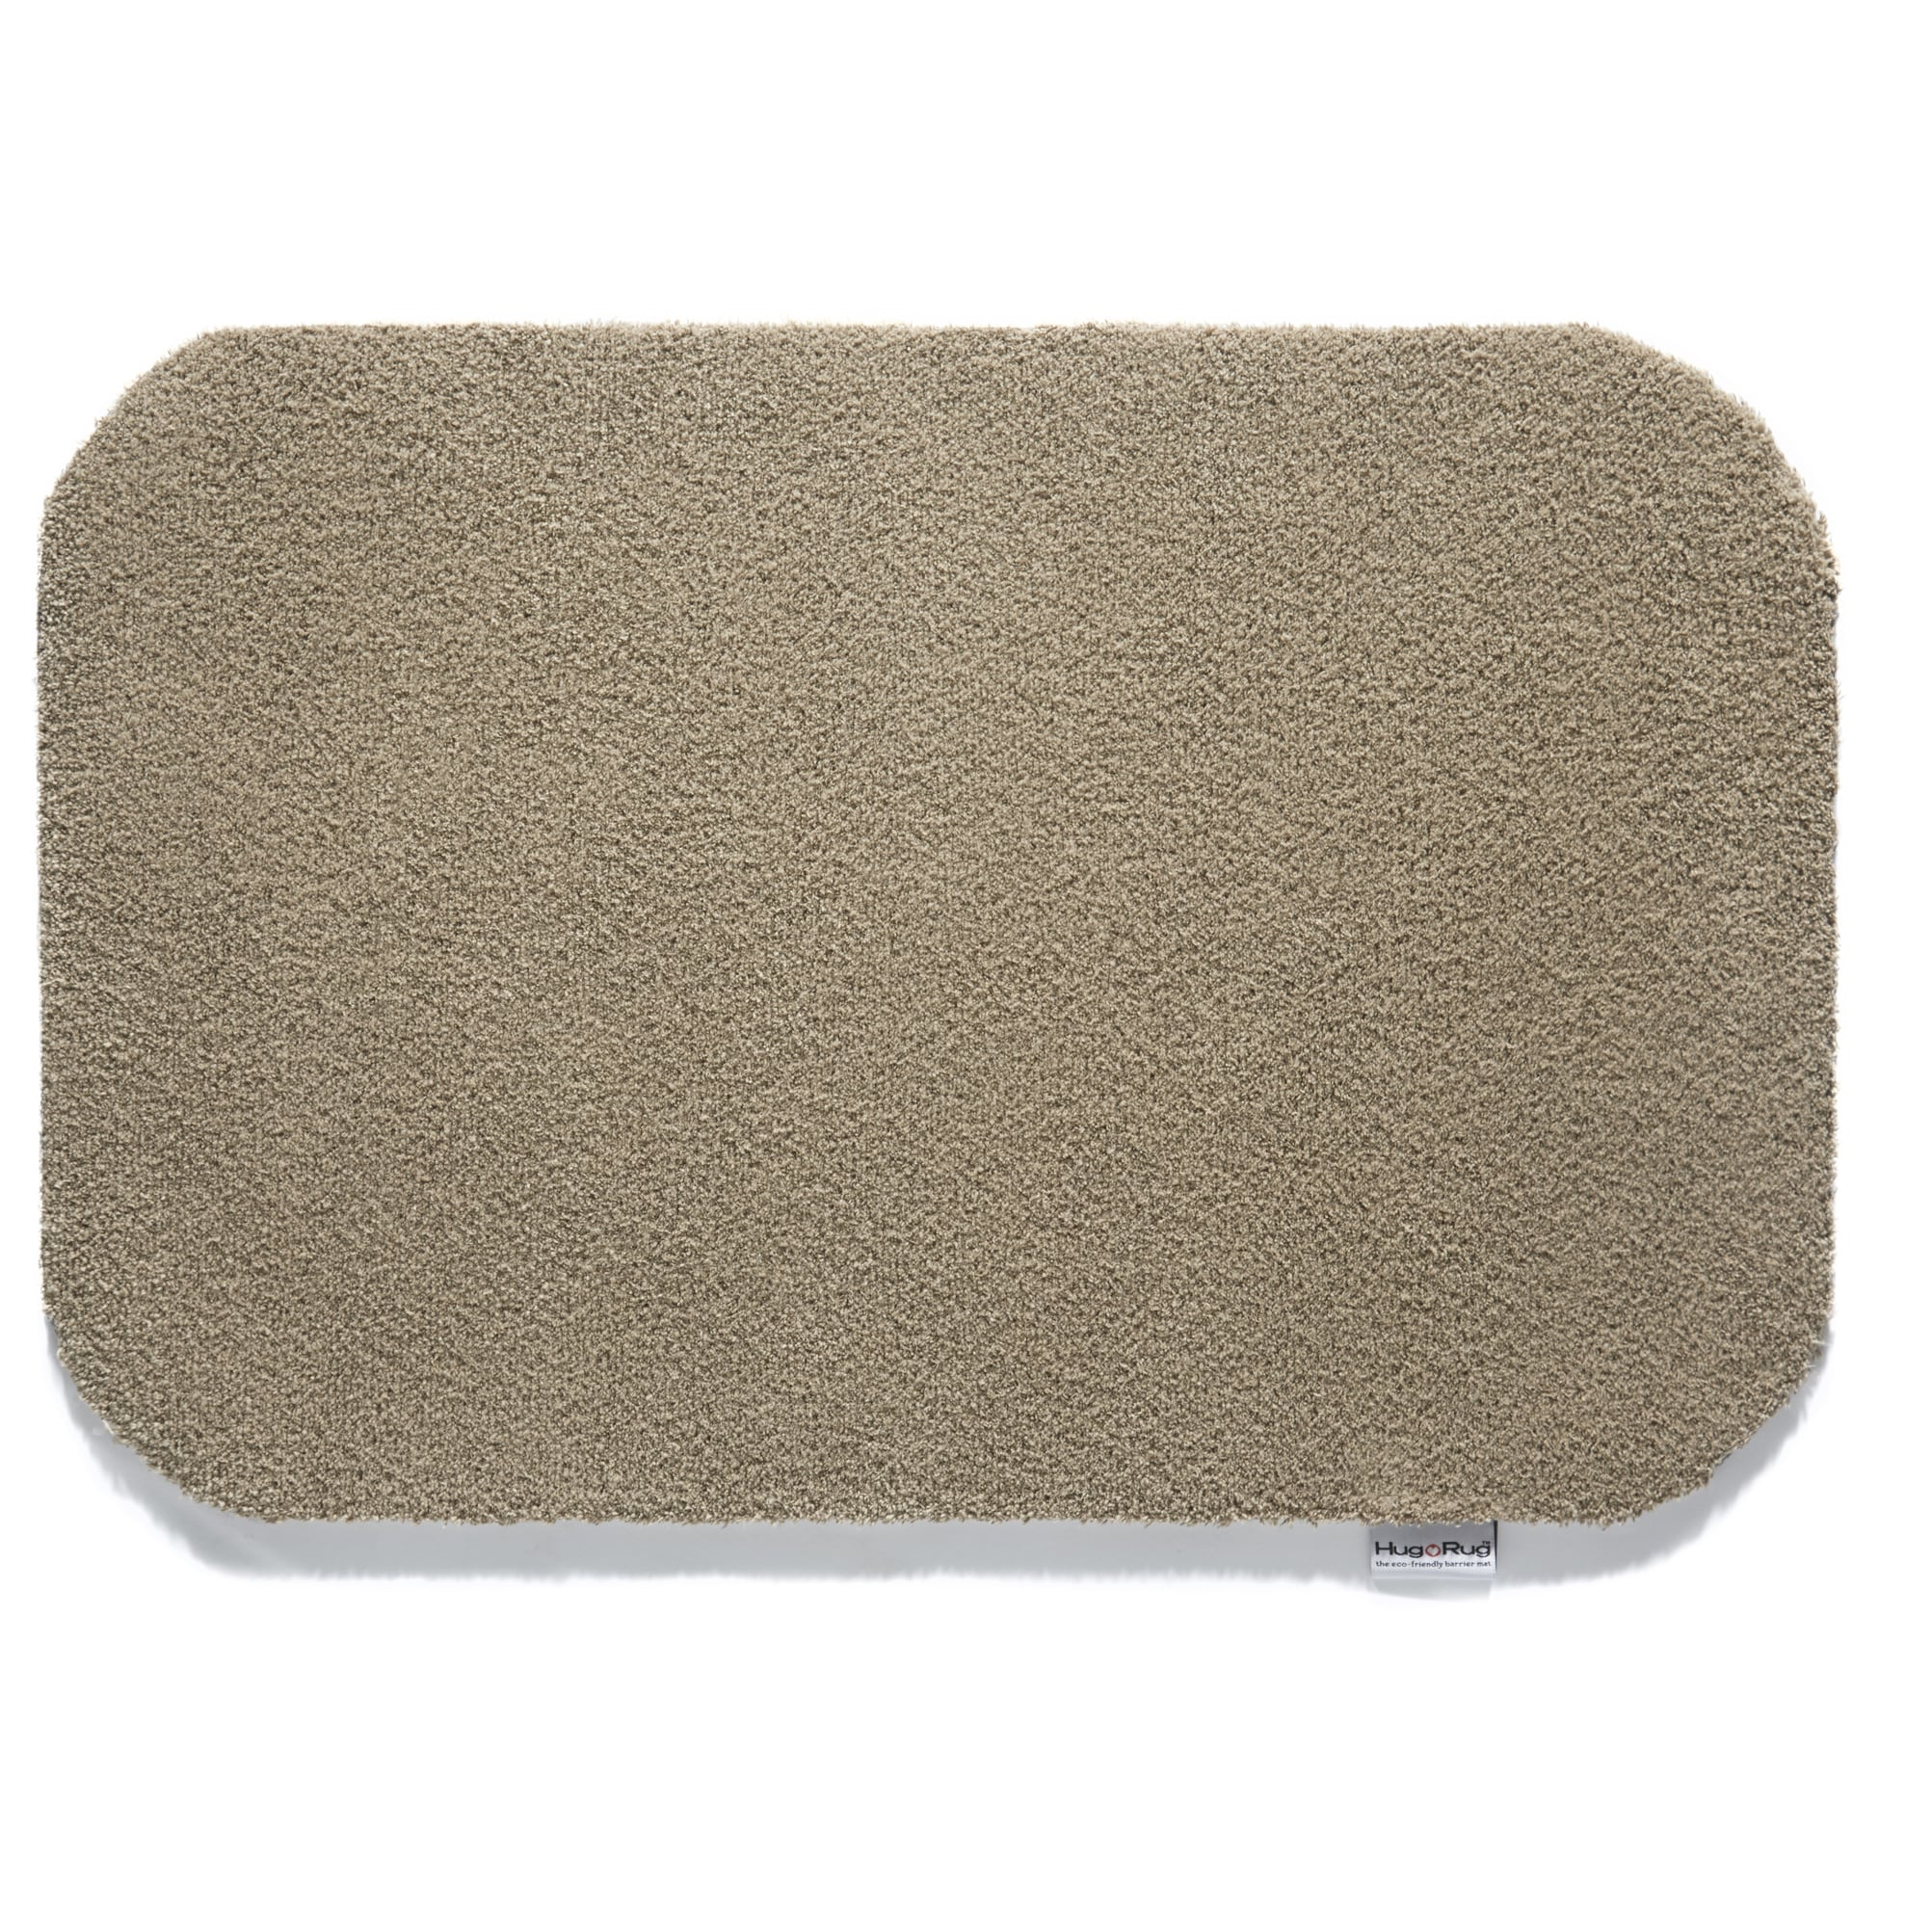 Bosmere Hug Rug Dirt Trapper Solid Color Washable Accent Rug (1'7.5 x 2'5.5) - 1'7 x 2'5